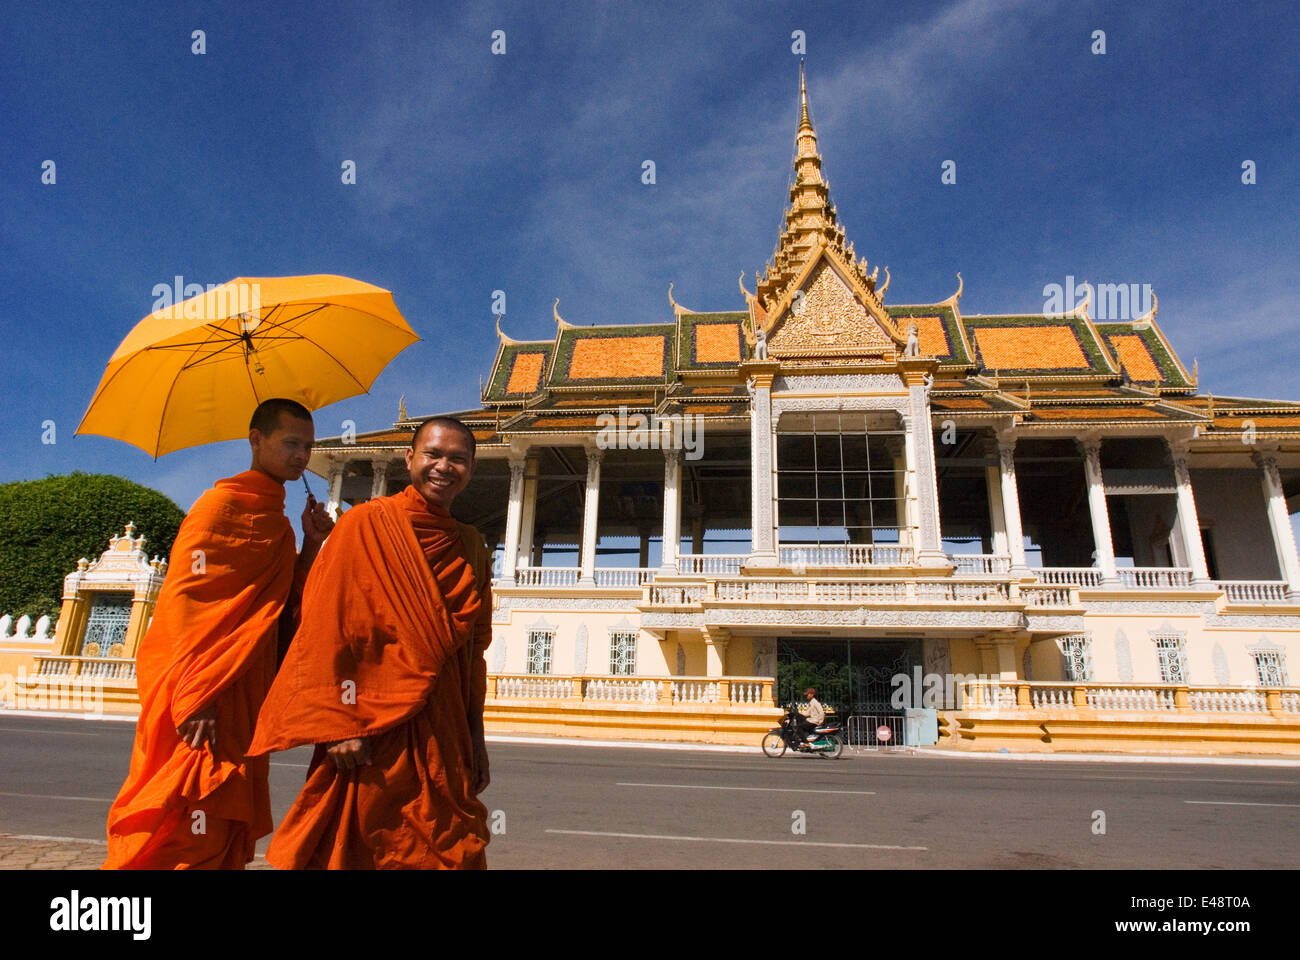 Monk walk outside the Royal Palace. Phnom Penh. The Royal Palace of Cambodia is a complex of buildings, even though - Stock Image